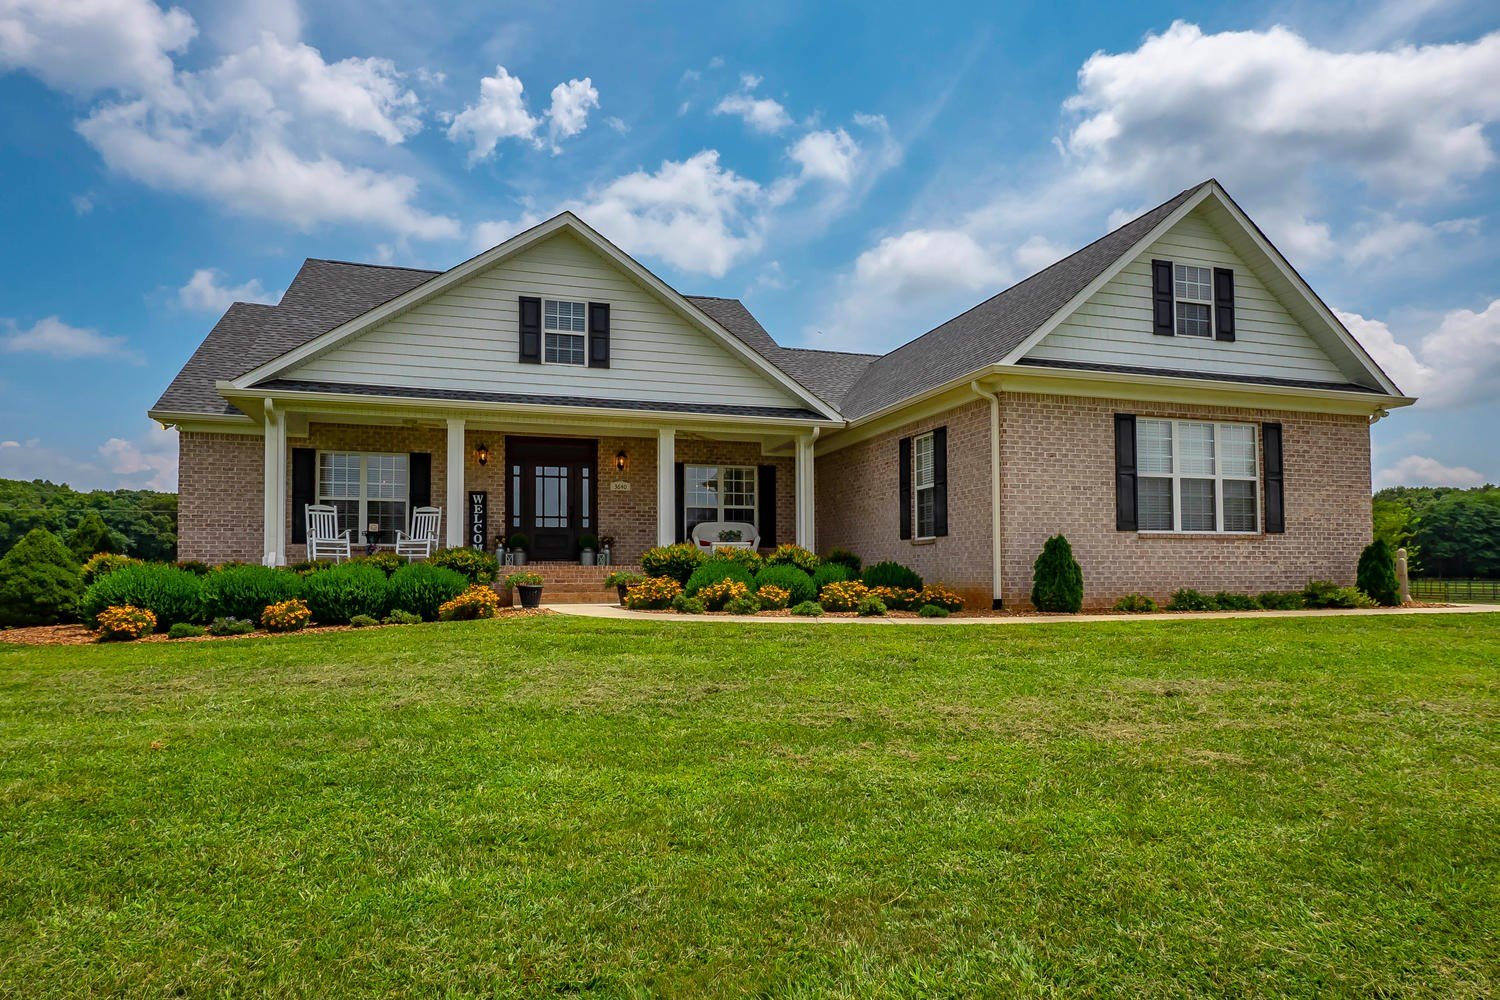 Middle Tennessee Country Home and Ranch for Sale!